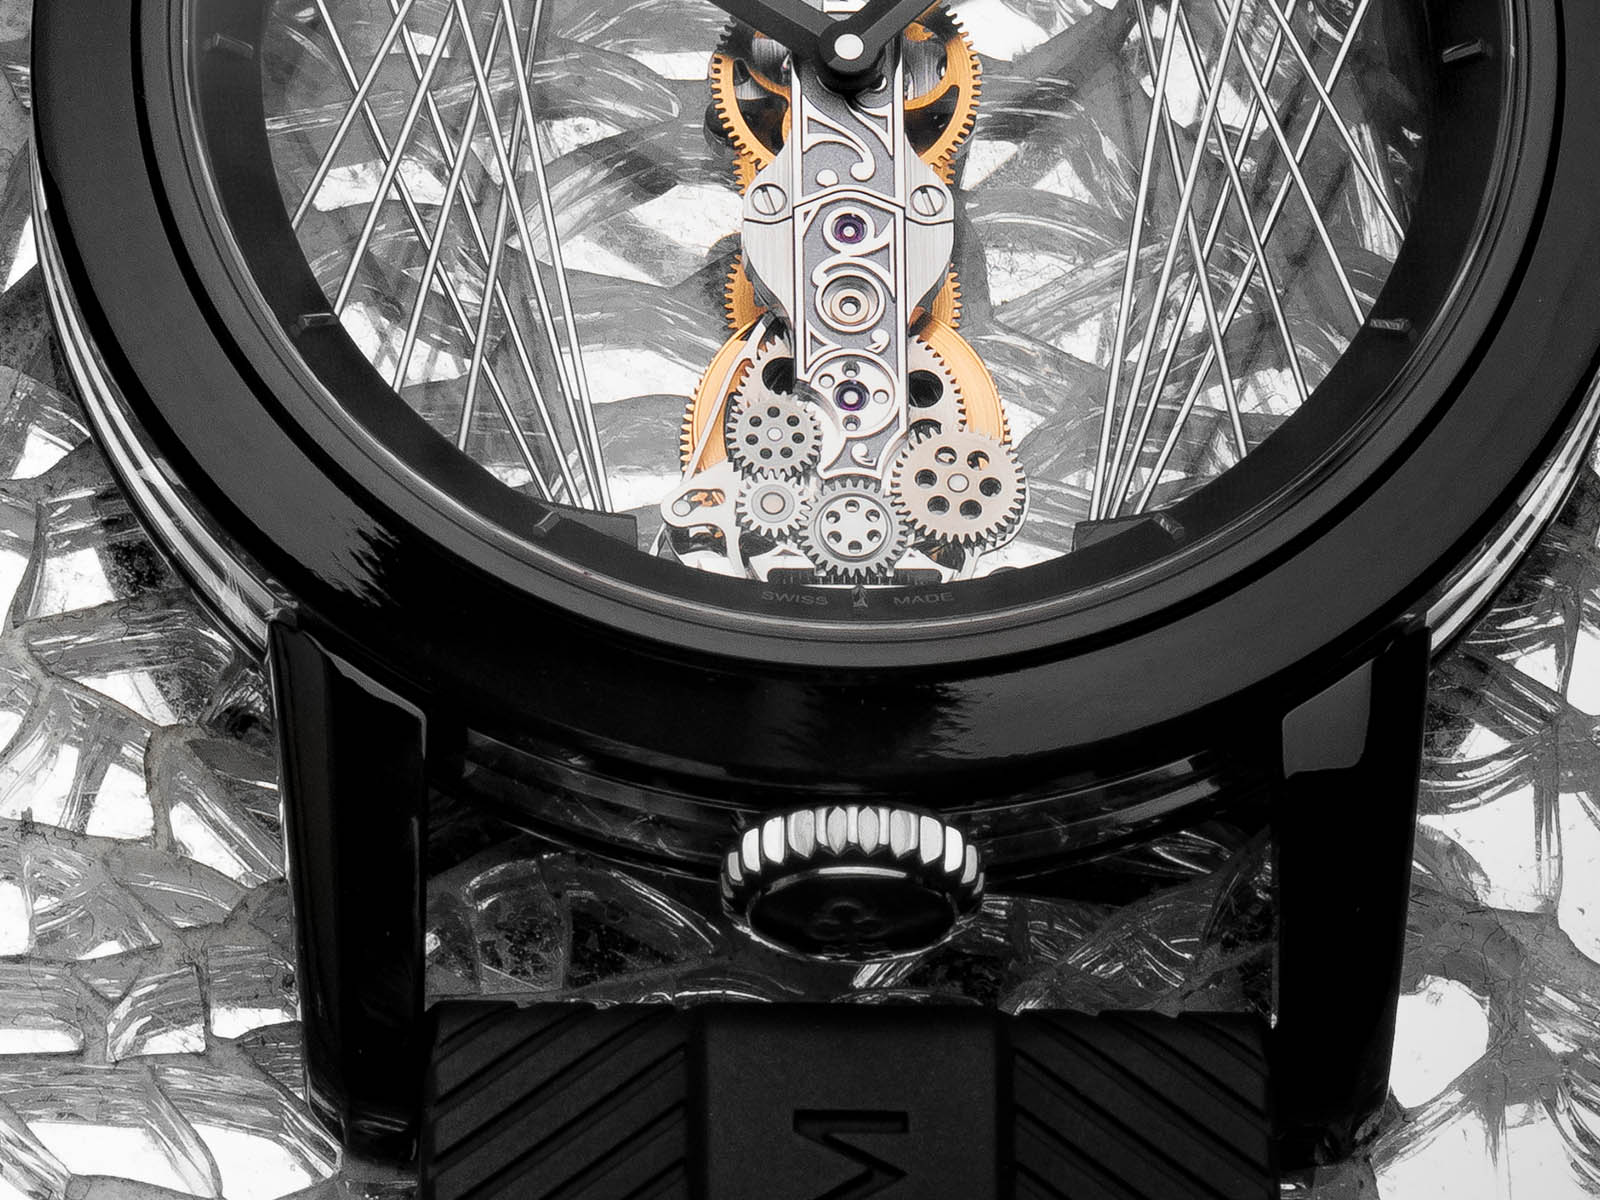 b113-03952-corum-golden-bridge-round-43-art-deco-3.jpg